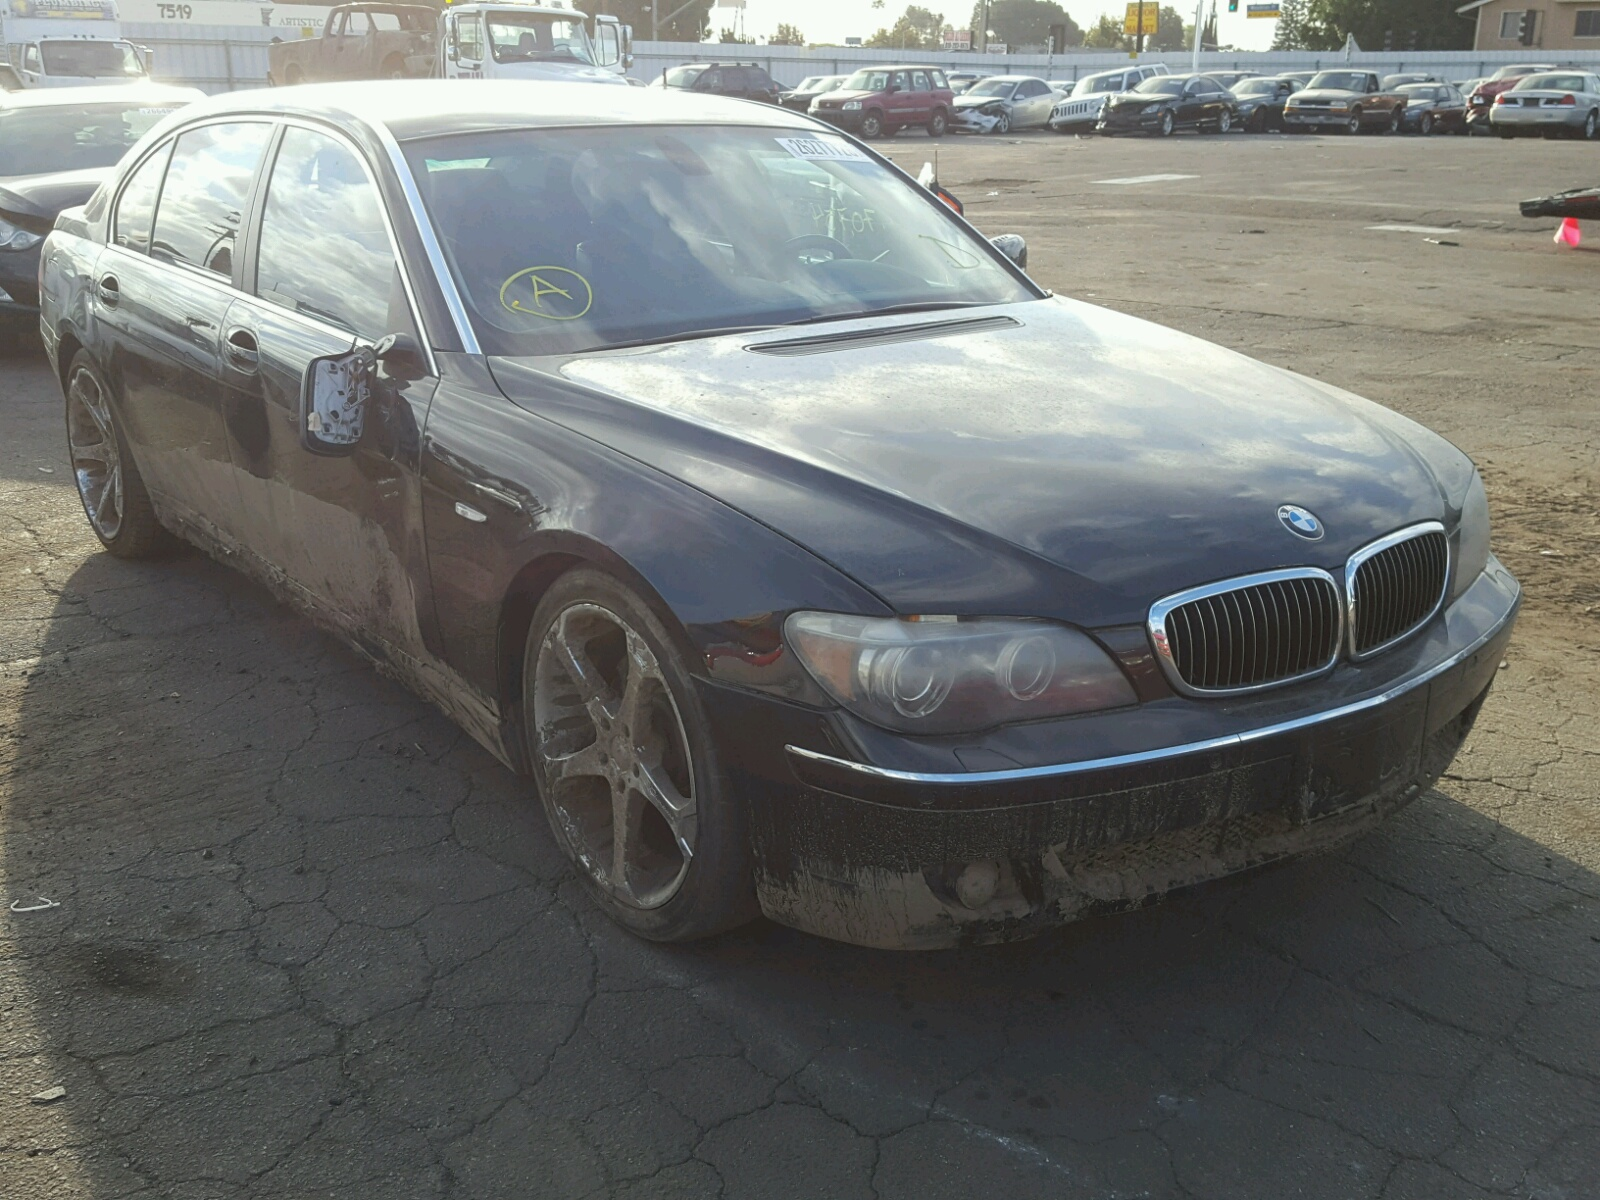 Auto Auction Ended On VIN WBAGLXDP BMW In OR - 2006 bmw 745 for sale